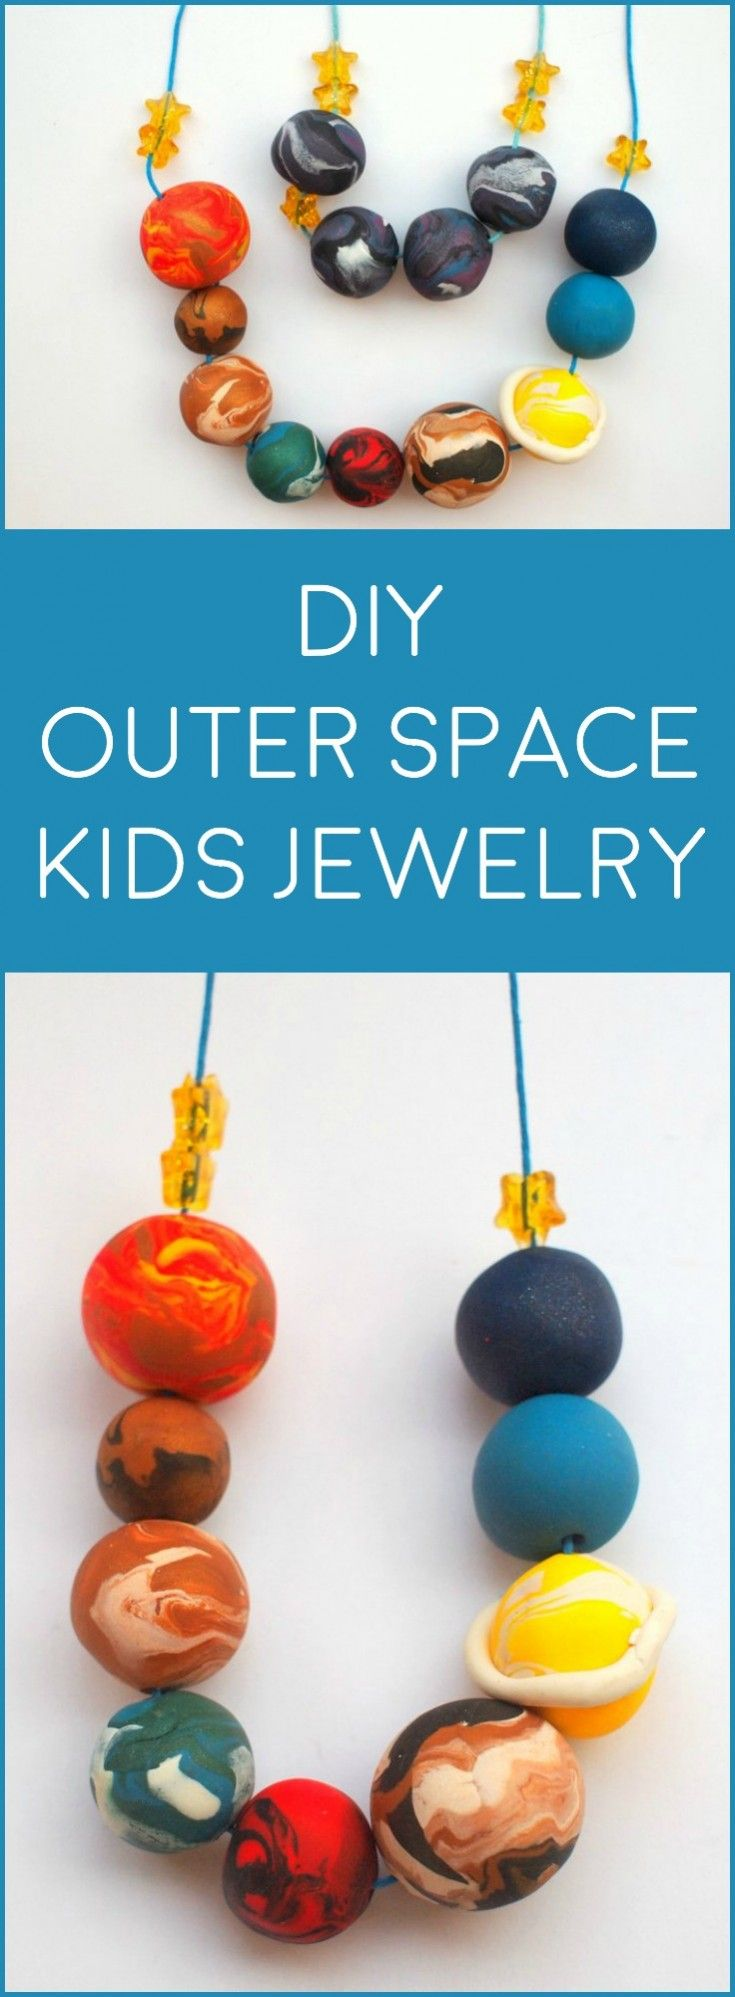 Are you looking for a kids jewelry project that's out-of-this-world fun? This strand of planets is made with clay - it's really easy to do! via @diy_candy